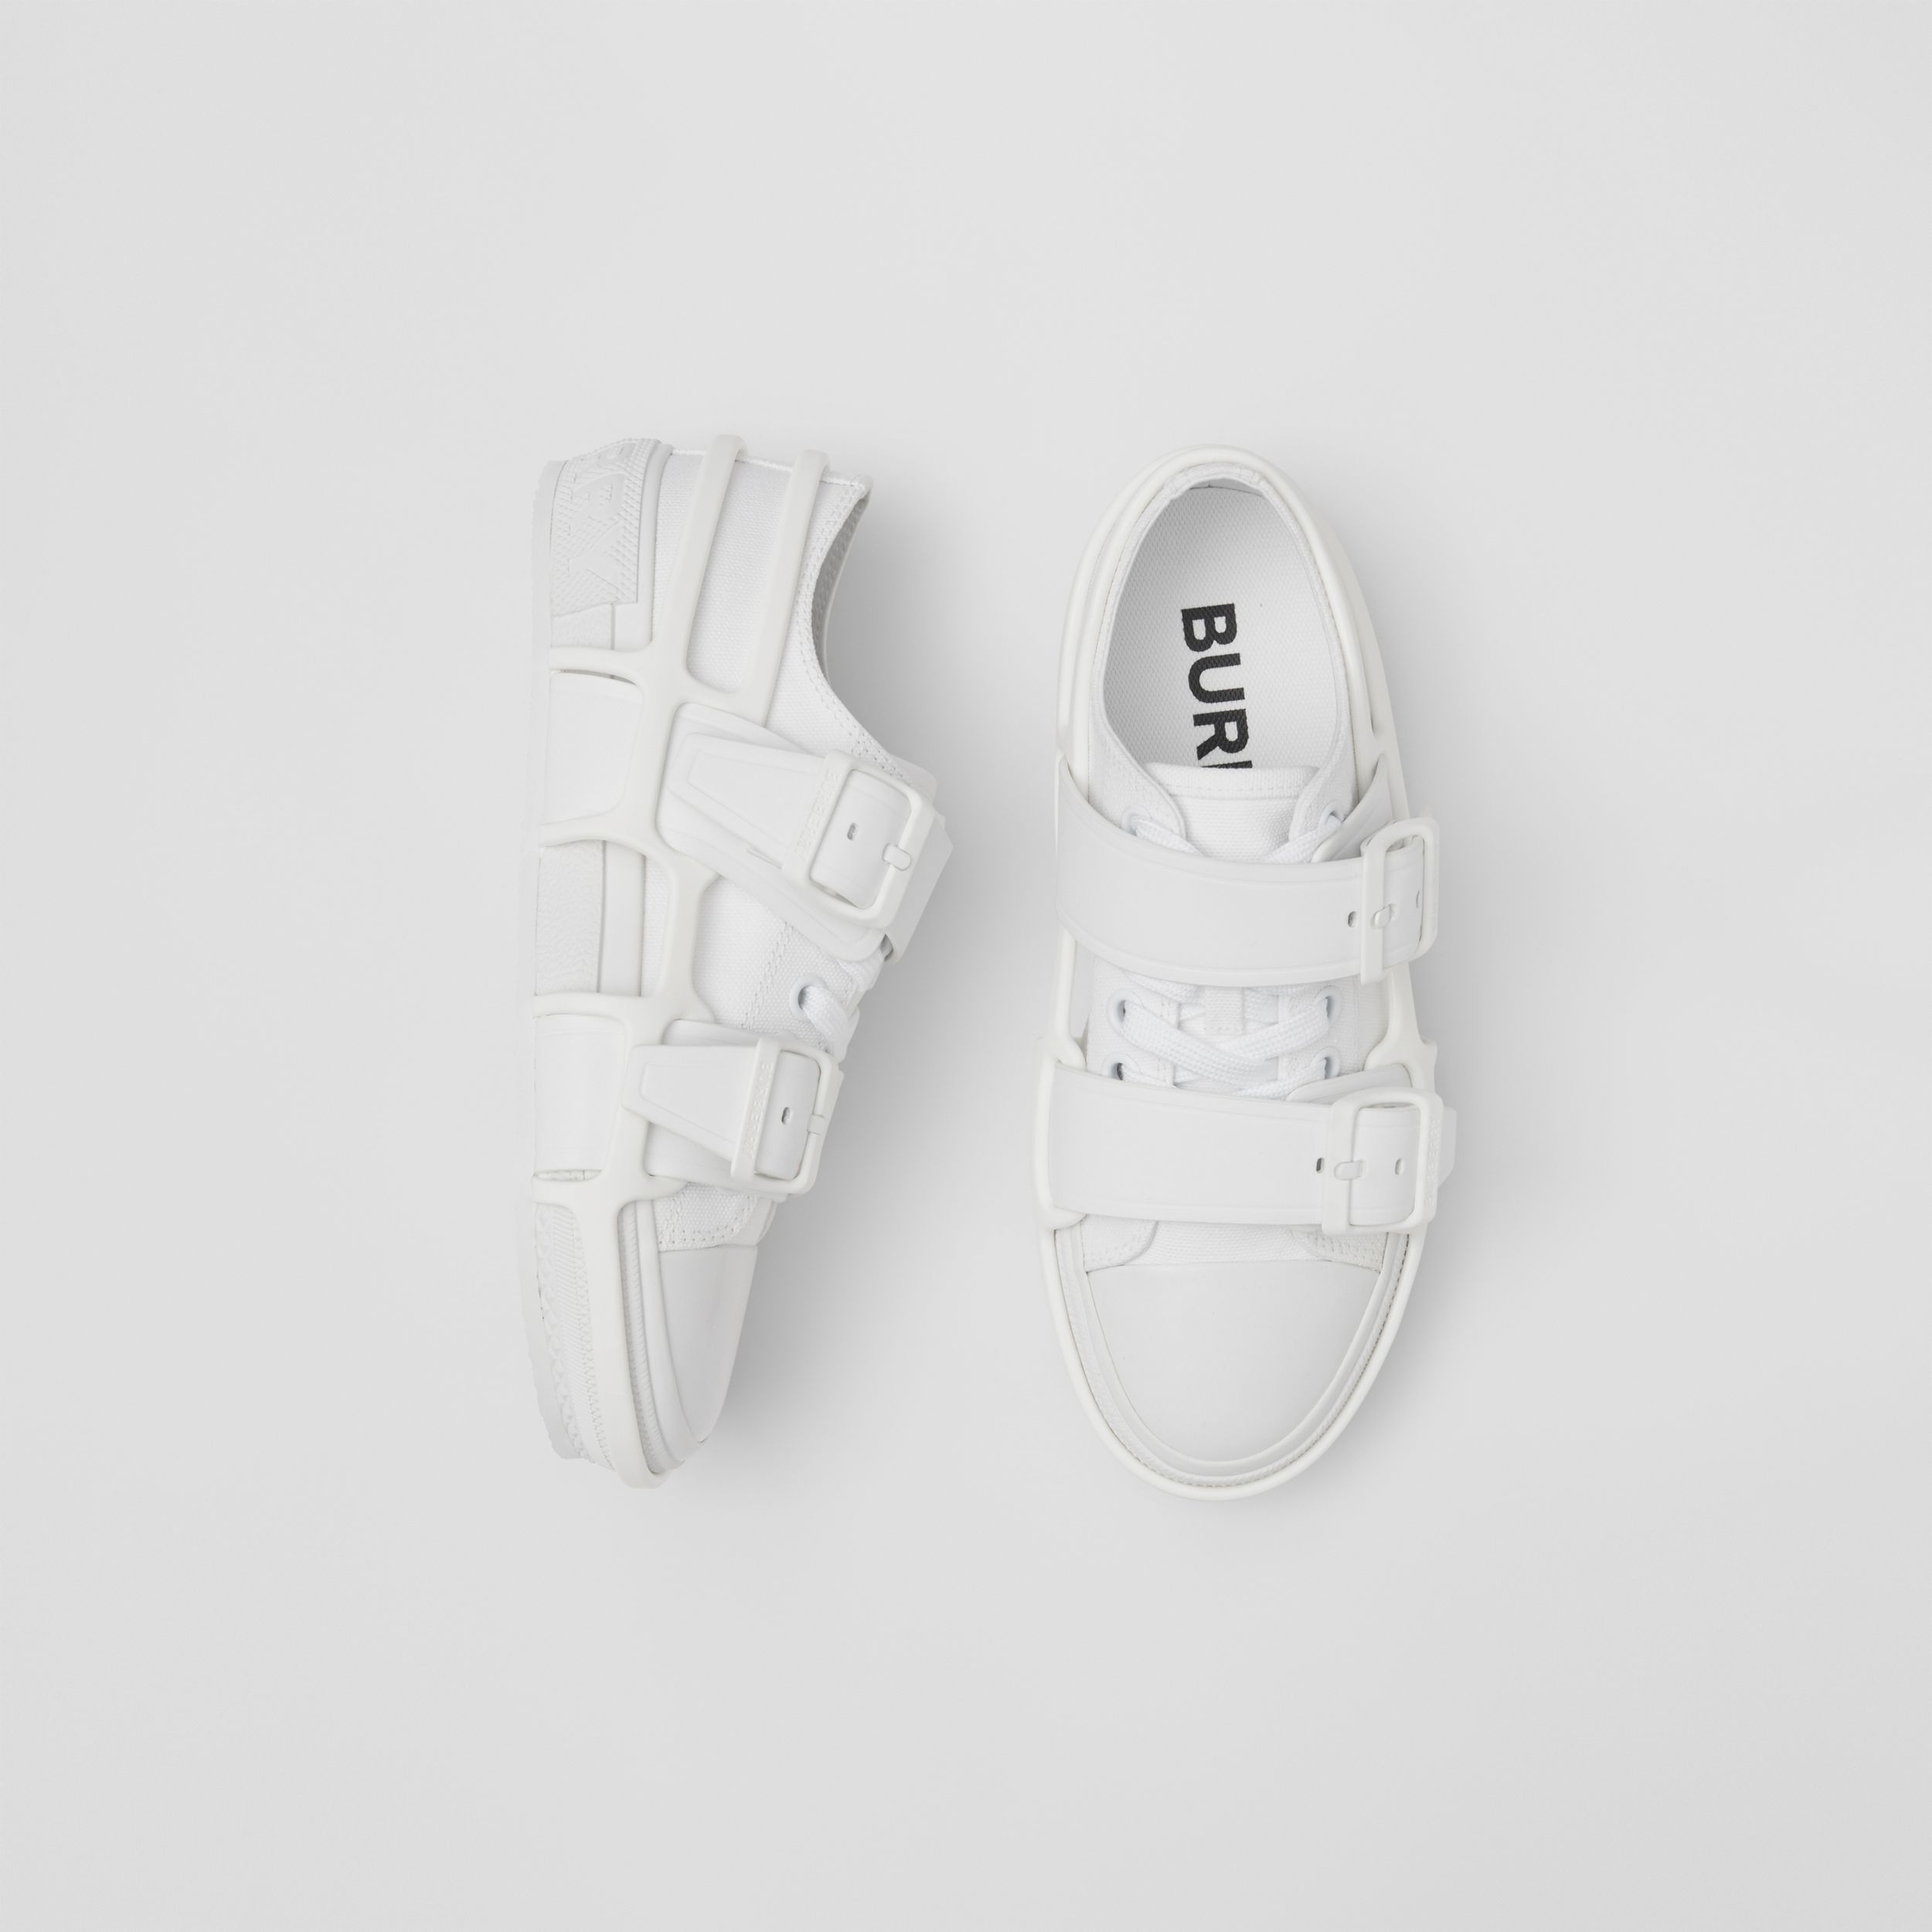 Cotton and Leather Webb Sneakers in White - Women | Burberry Canada - 1